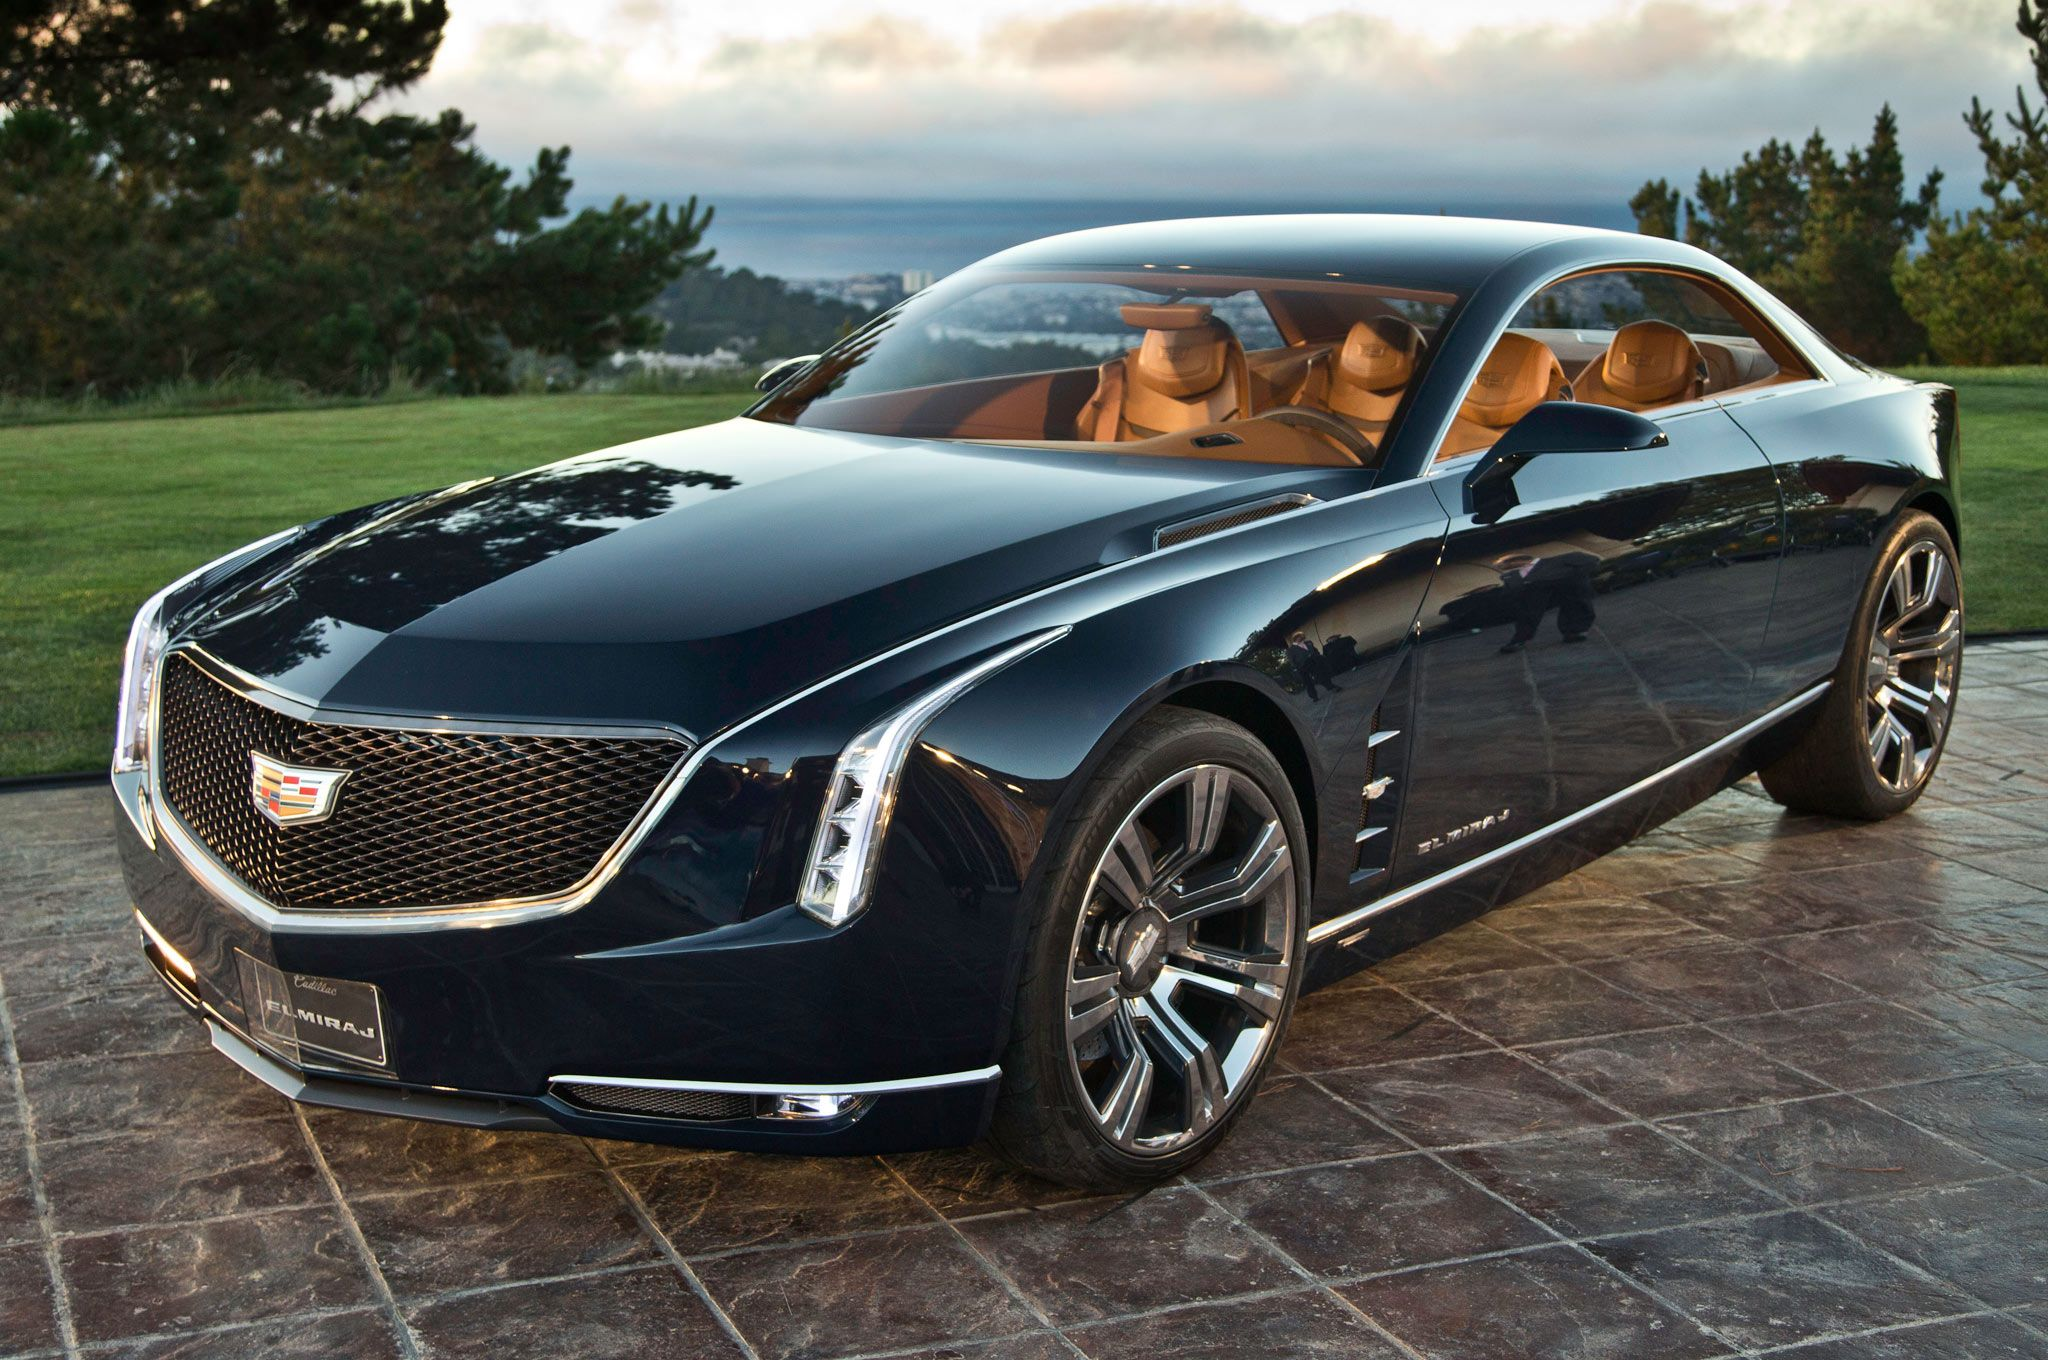 2016 Cadillac Elmiraj Top Car Wallpaper (8767) - adamjford.com